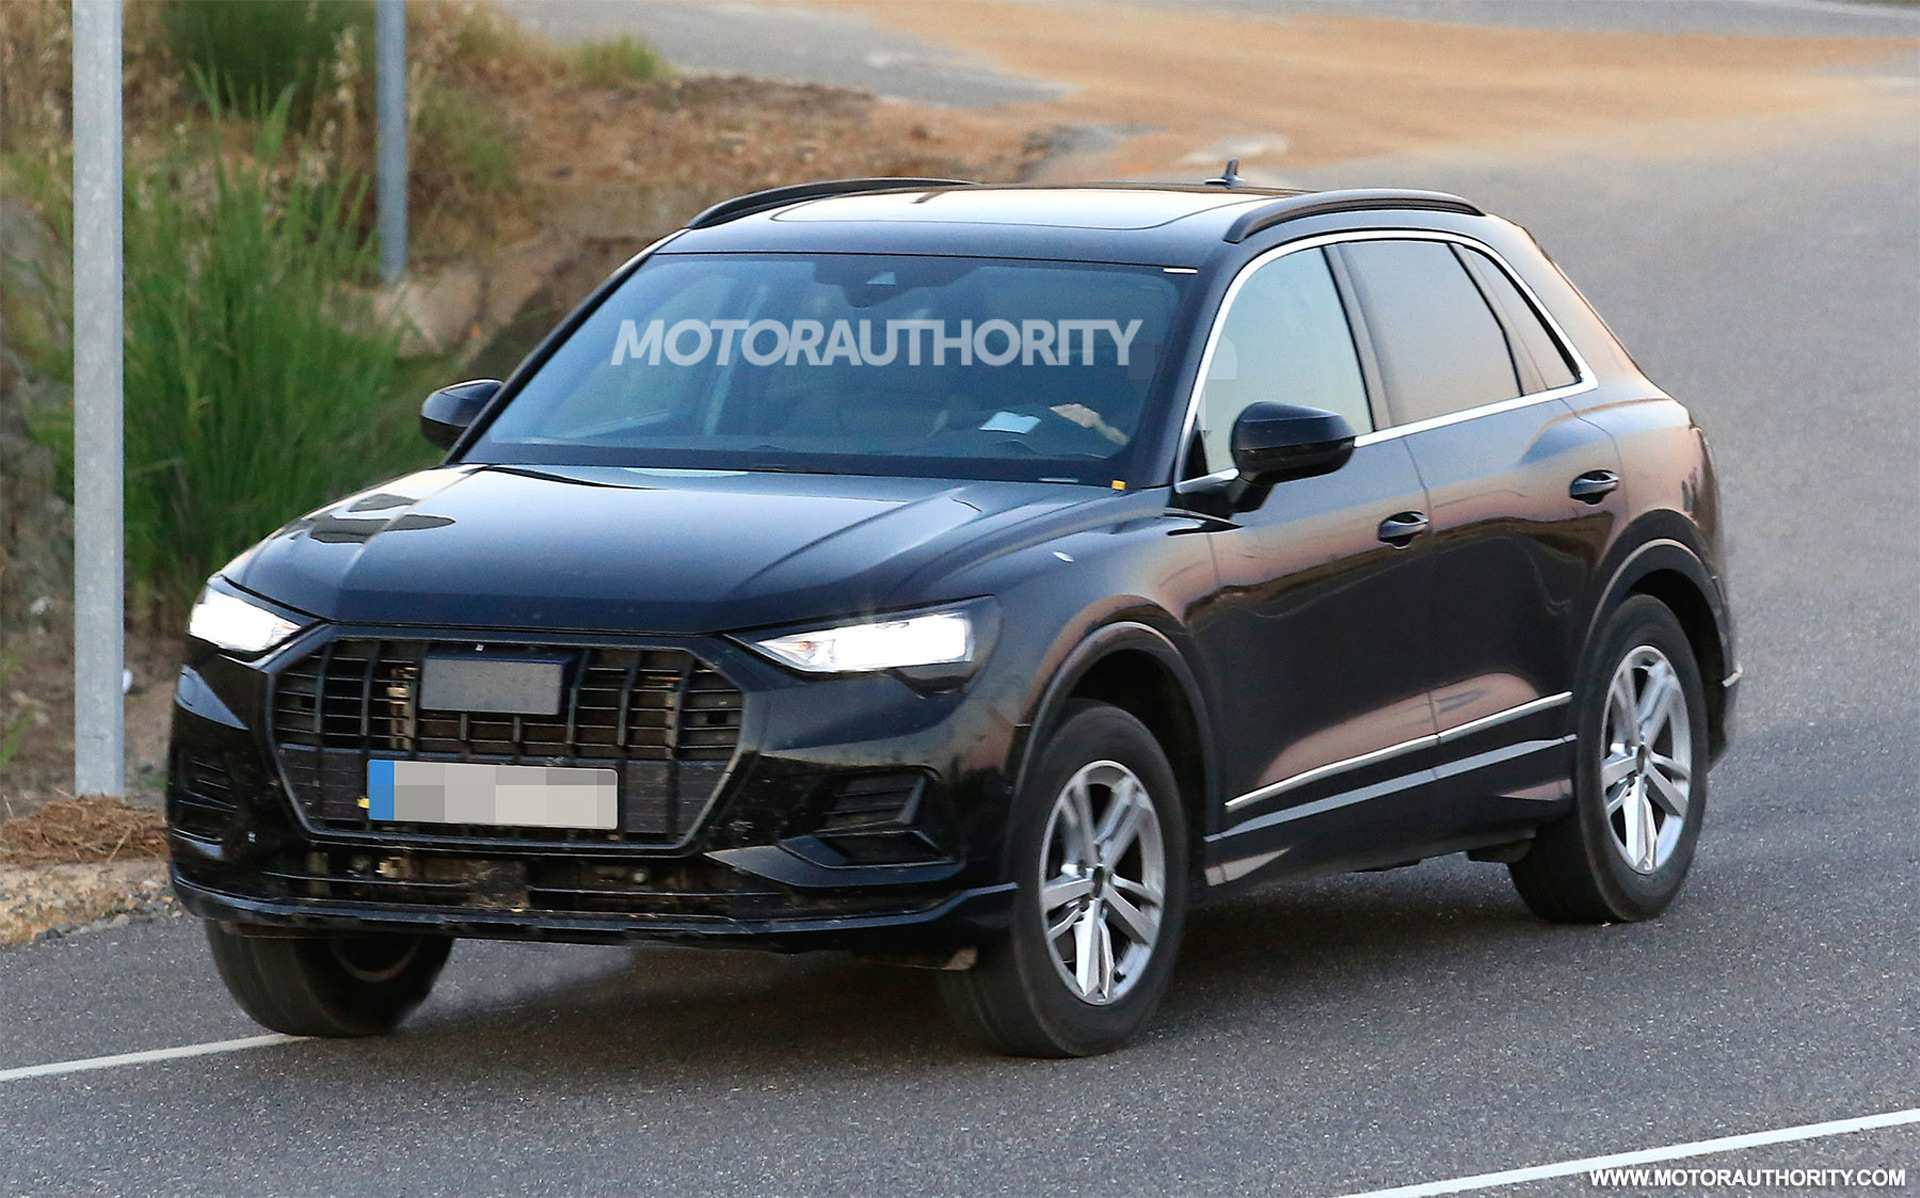 42 All New Audi Q3 S Line 2020 Release Date